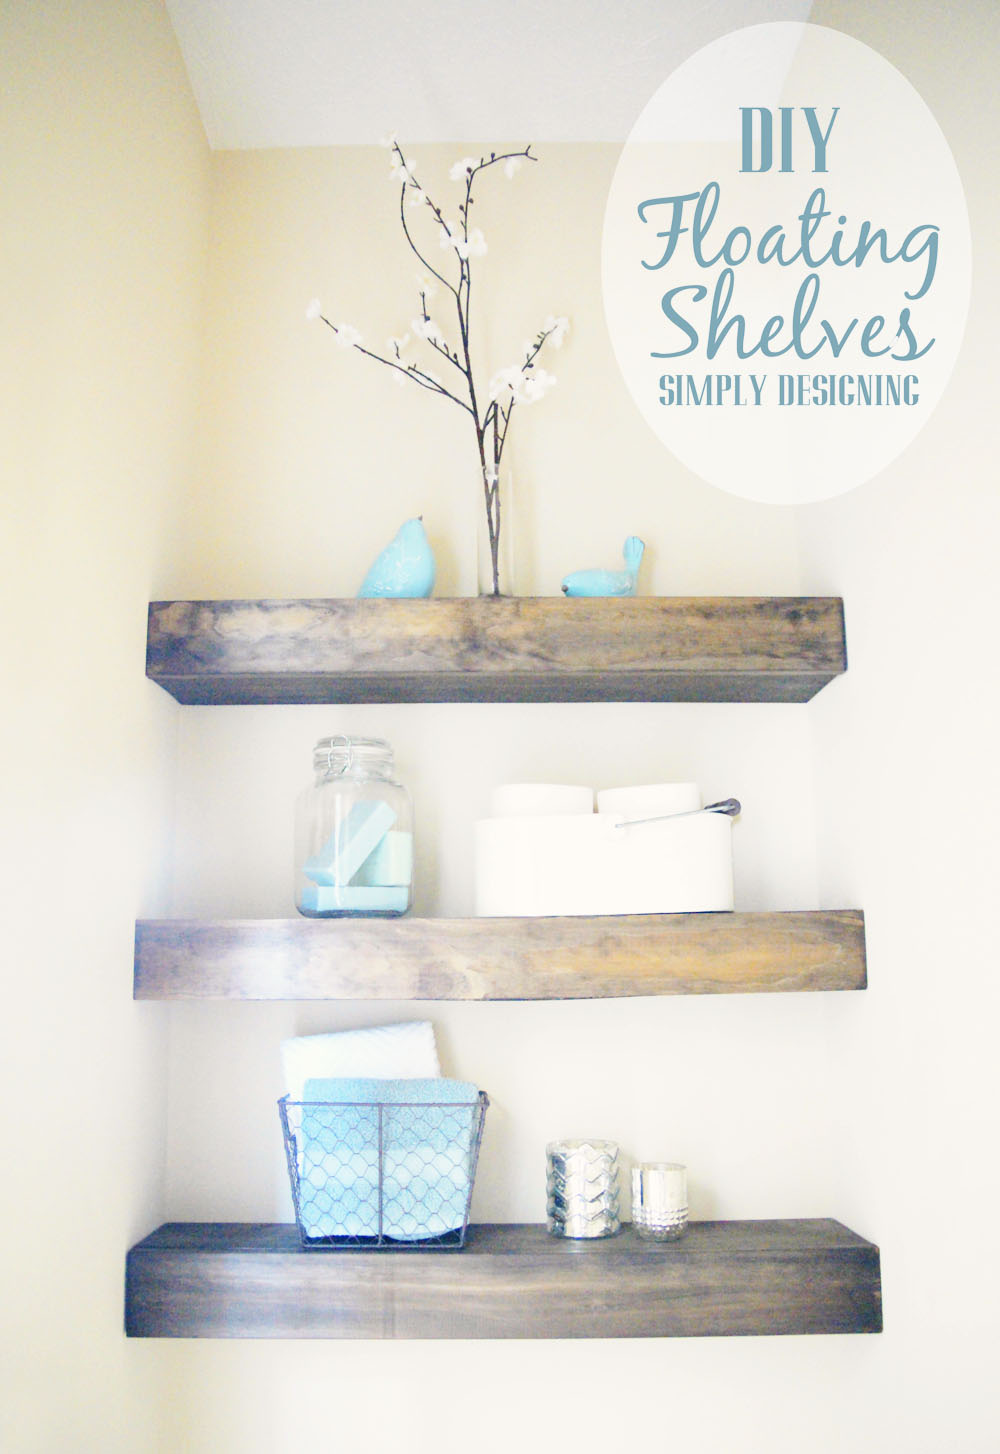 diy floating shelves how measure cut and install small bathroom are really easy make they the perfect stainless wall removing kitchen cabinet doors for open shelving shelf decor